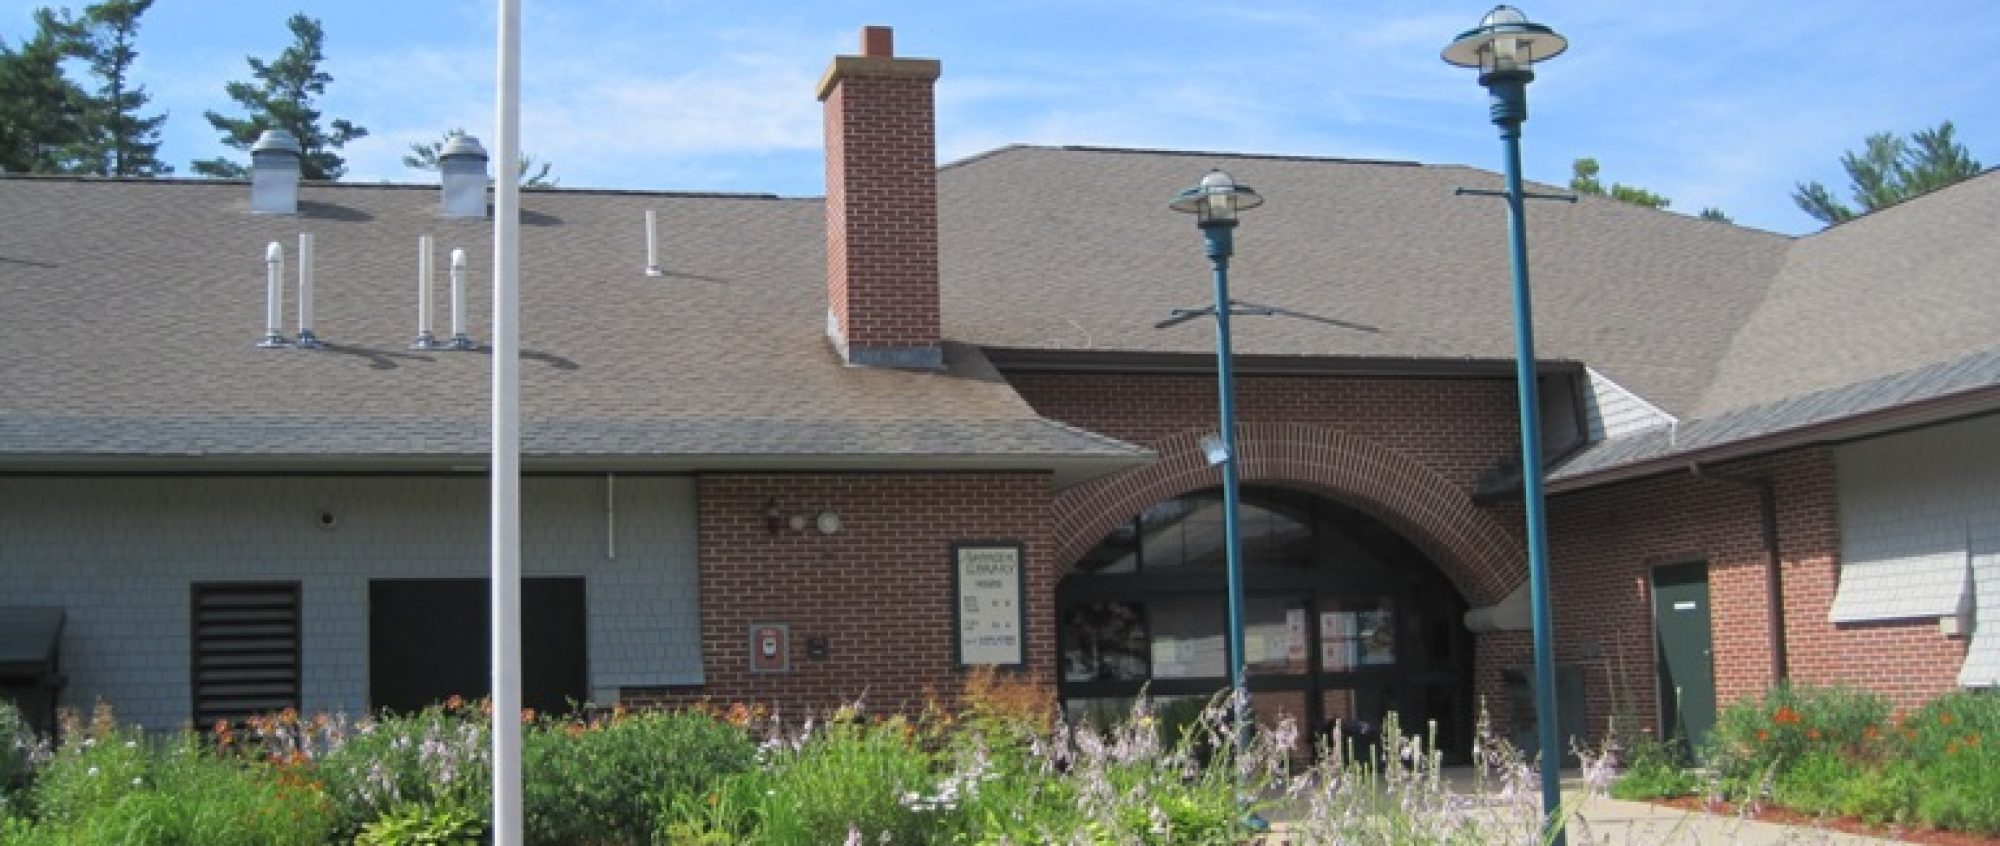 Seabrook Library